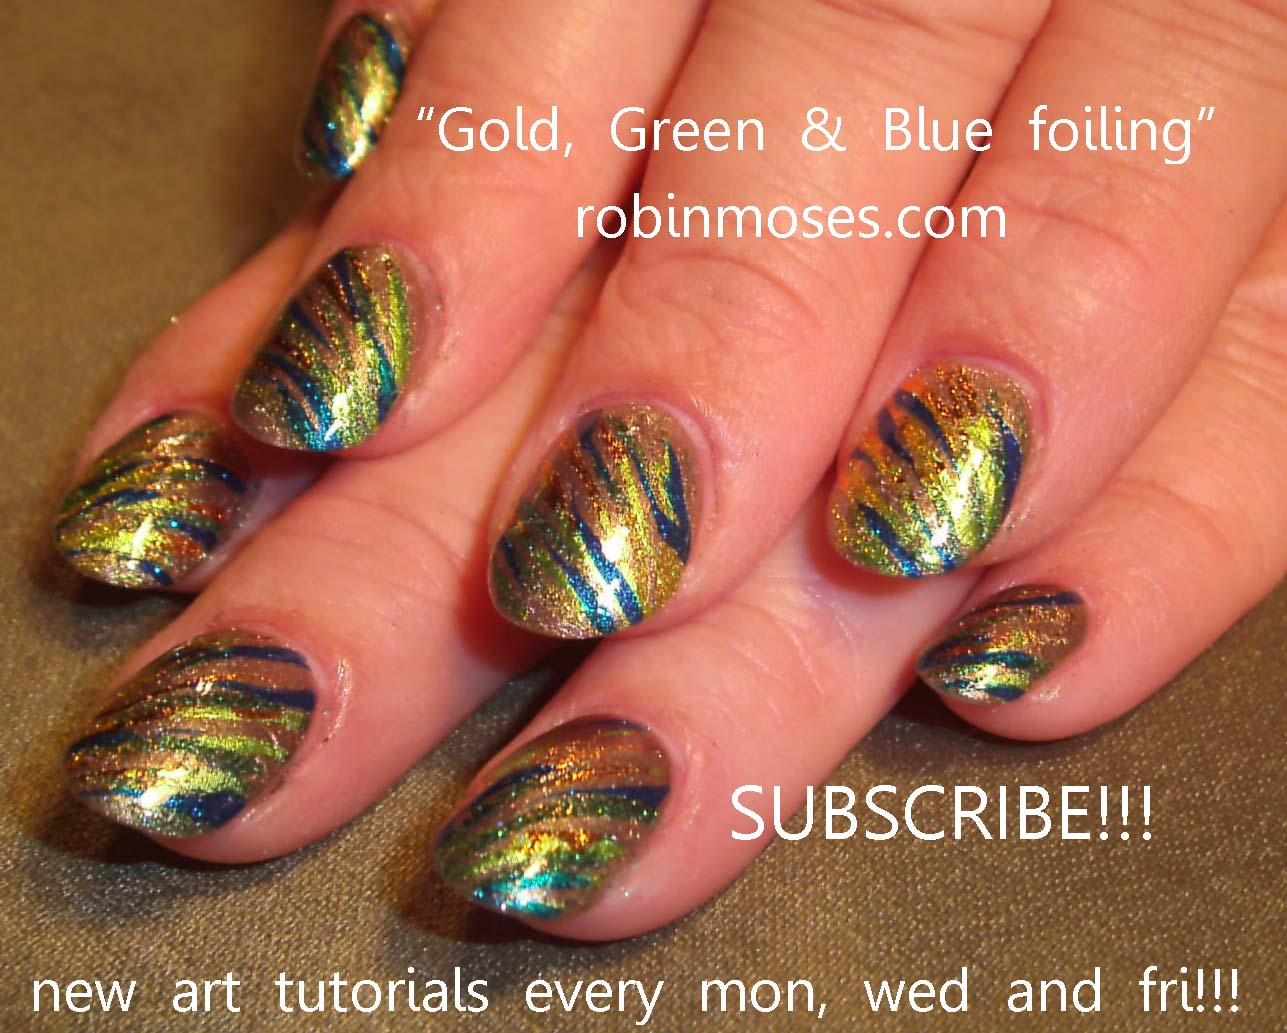 Simple autumn leaves autumn leaves fall leaves fall nail art blue green and gold glitter and gold foiling for fallrobin moses nail art tutorial prinsesfo Choice Image